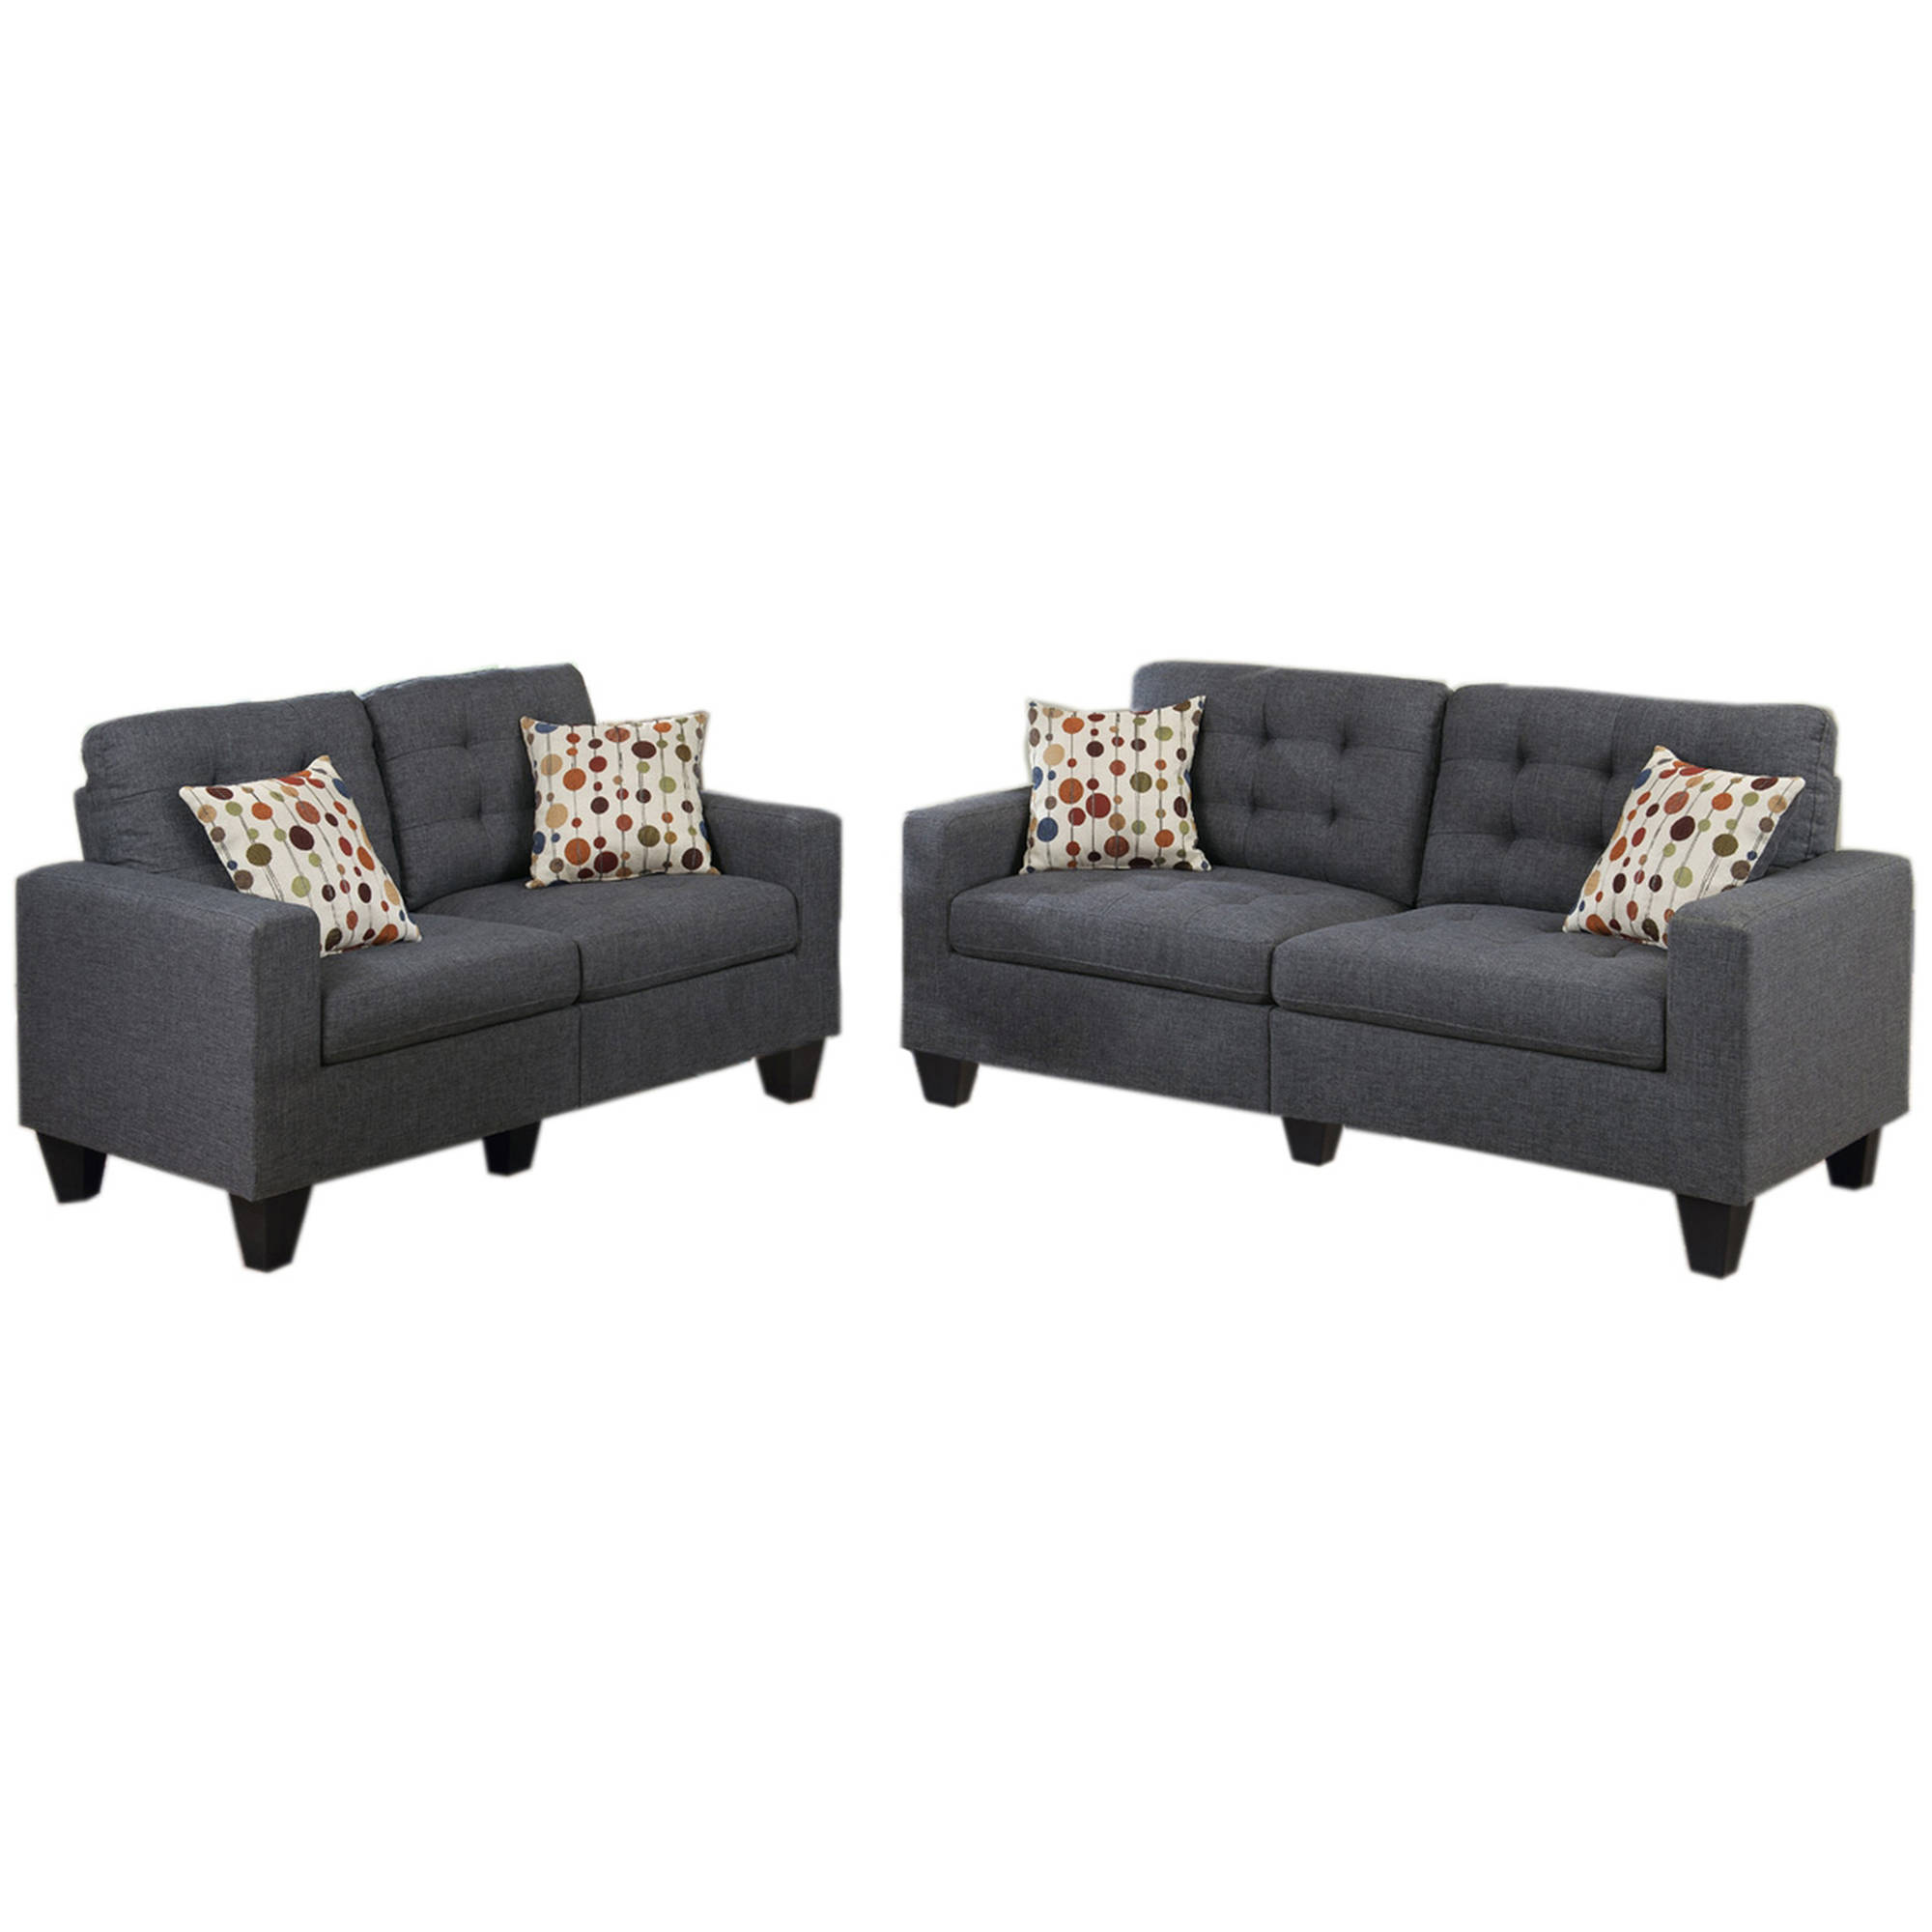 Superbe Bobkona Windsor Linen Like Polyfabric 2 Piece Sofa And Loveseat Set